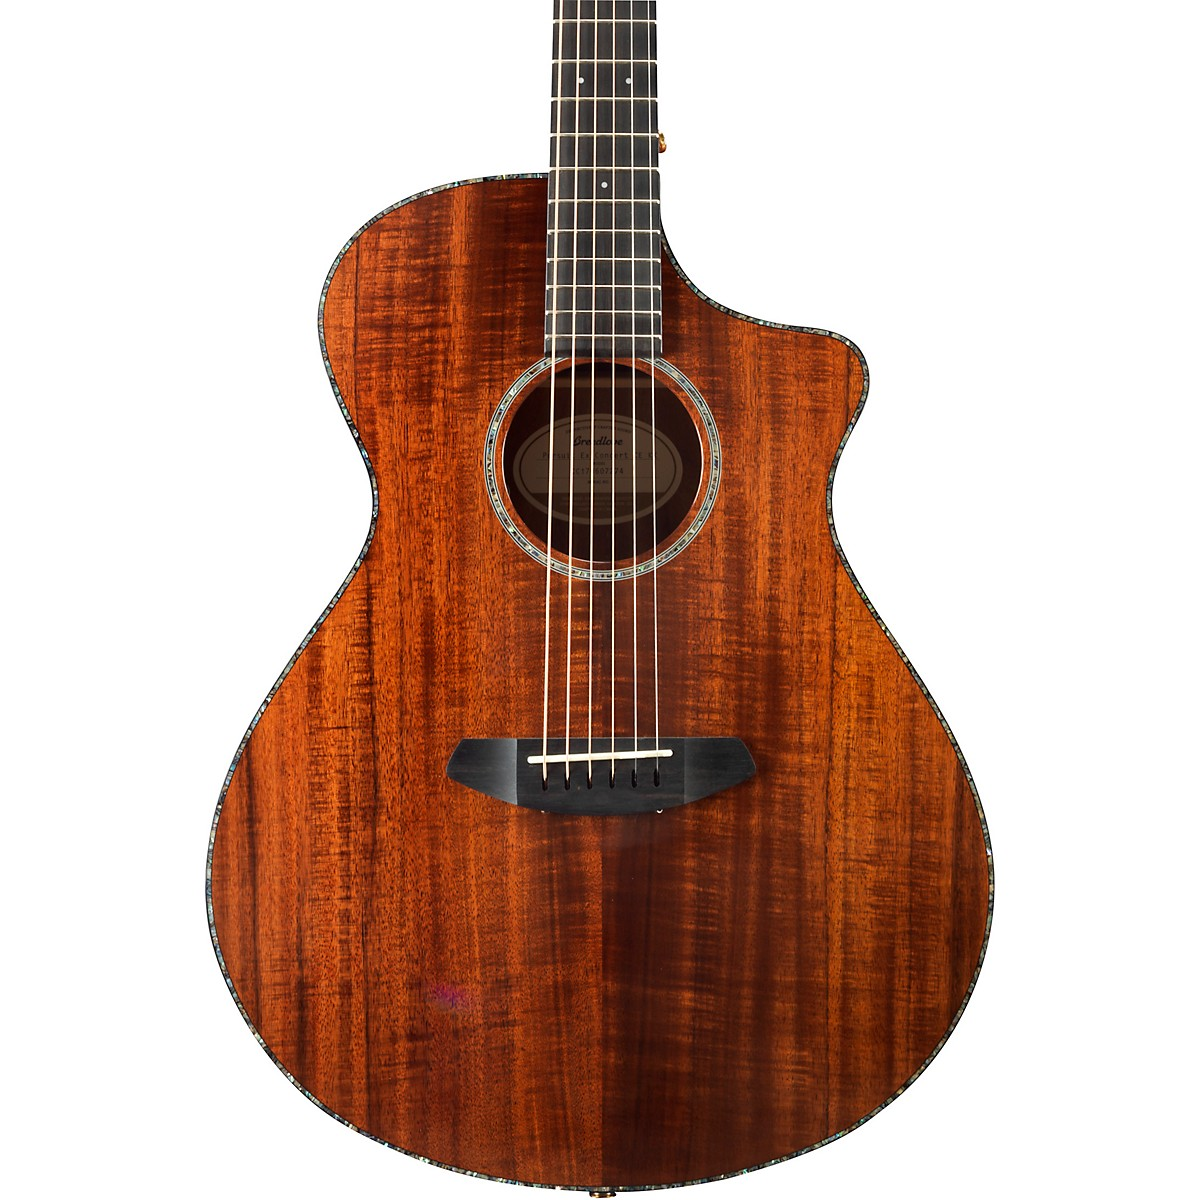 Breedlove Pursuit Exotic Concert Cutaway CE Koa Acoustic-Electric Guitar